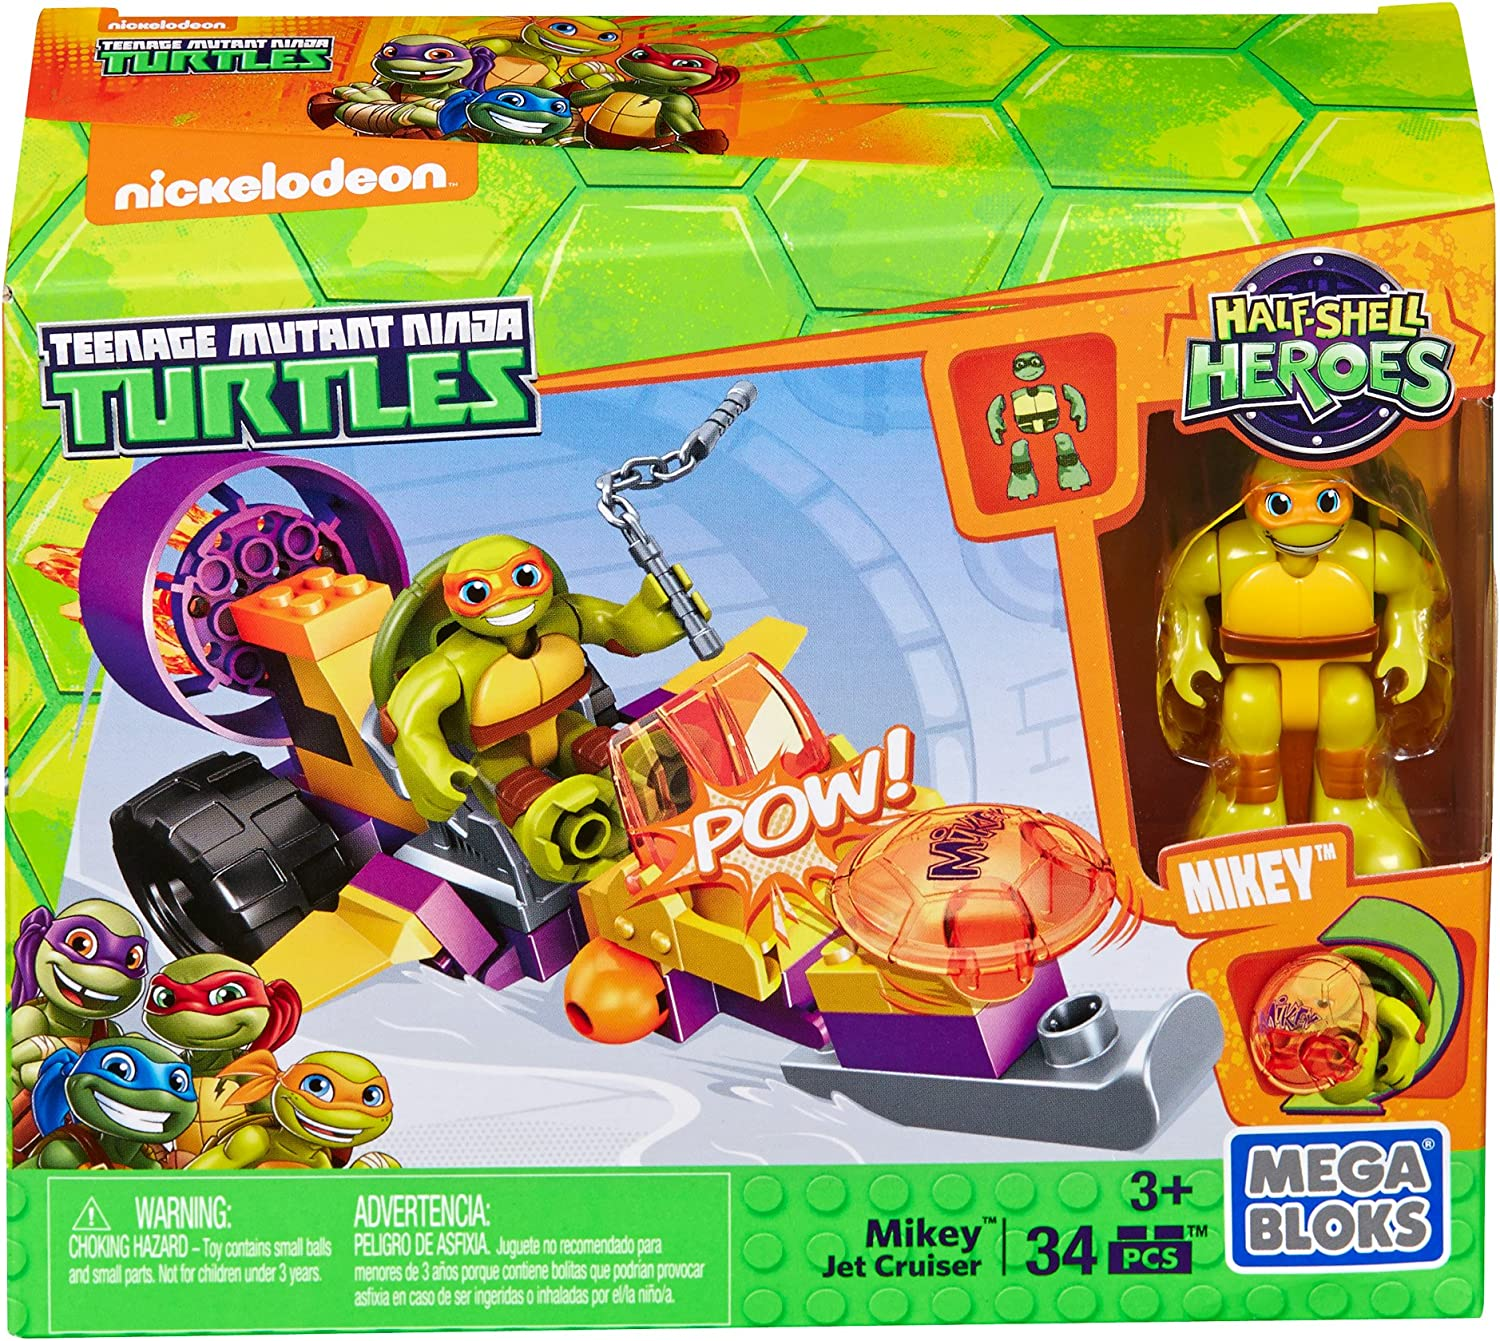 Mega Construx Teenage Mutant Ninja Turtles Half-Shell Heroes Mikey's Jet Cruiser